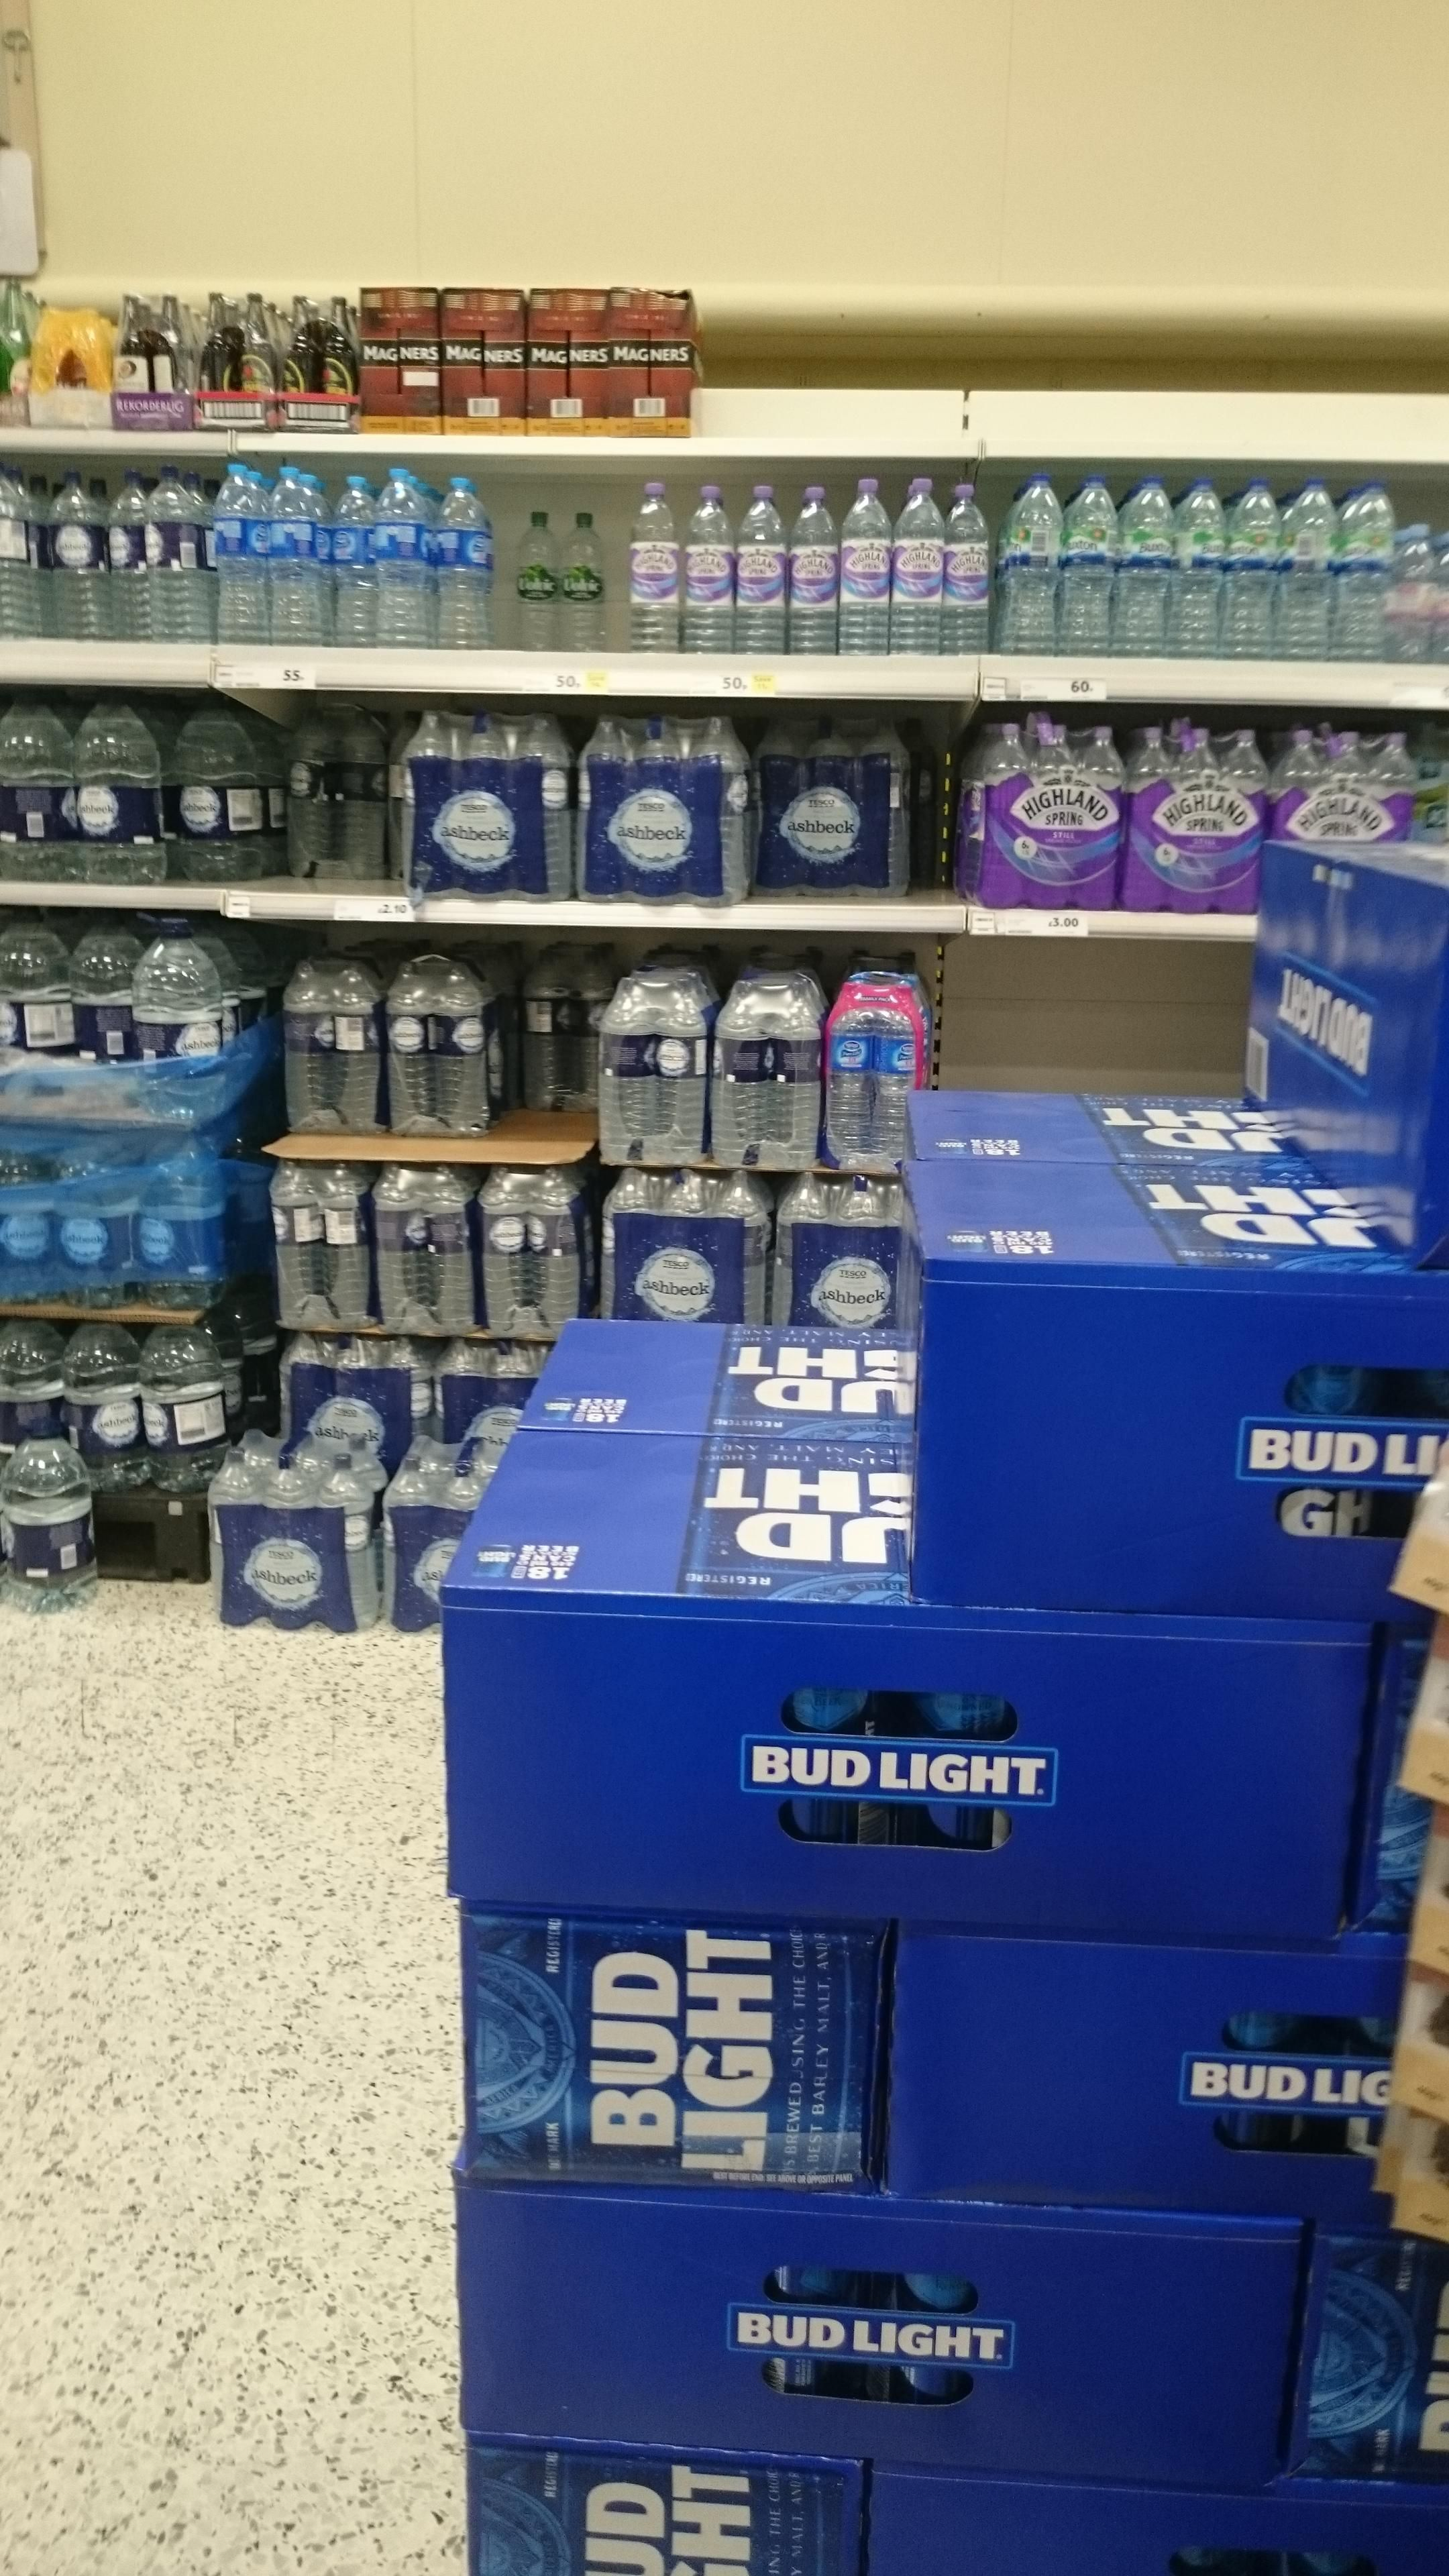 We've started getting Bud Light in the UK. My local supermarket is keeping it next to the water.